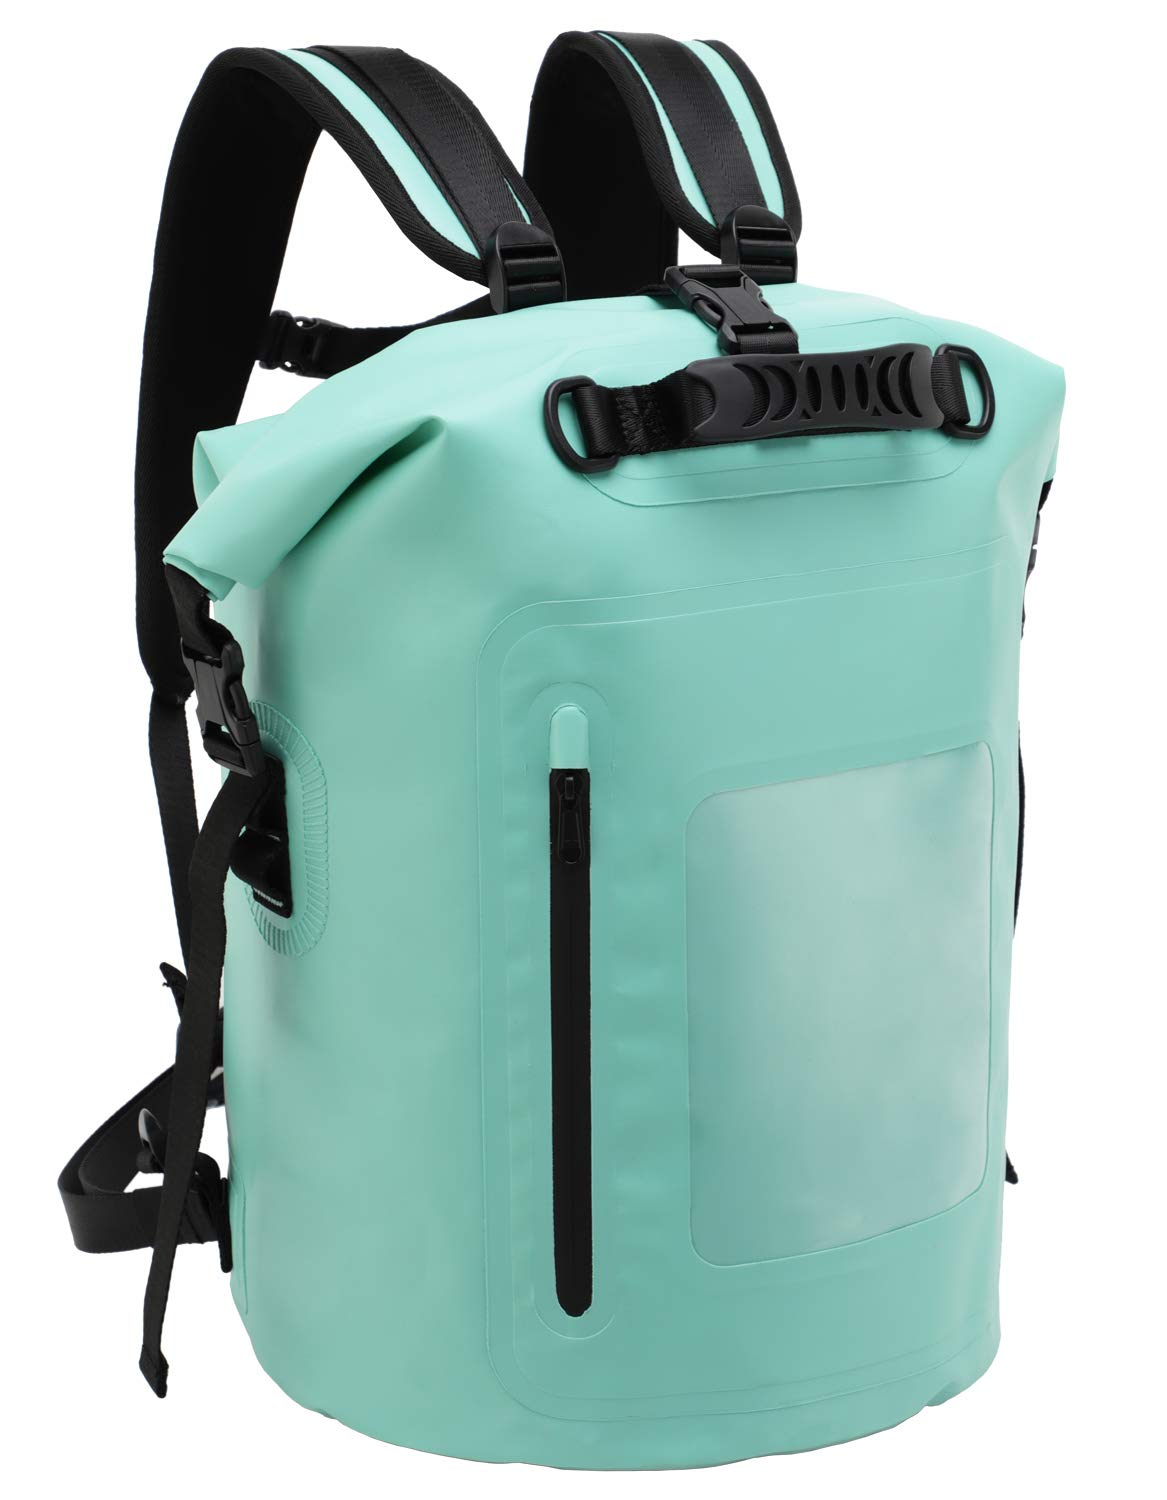 MIER Large Waterproof Backpack Roll Top Dry Bag for Kayaking, Boating, Rafting, Surfing, Swimming, Easy Access Front Zippered Pocket, Padded Back Support and Cushioned Adjustable Straps, 30L, Turquois by MIER